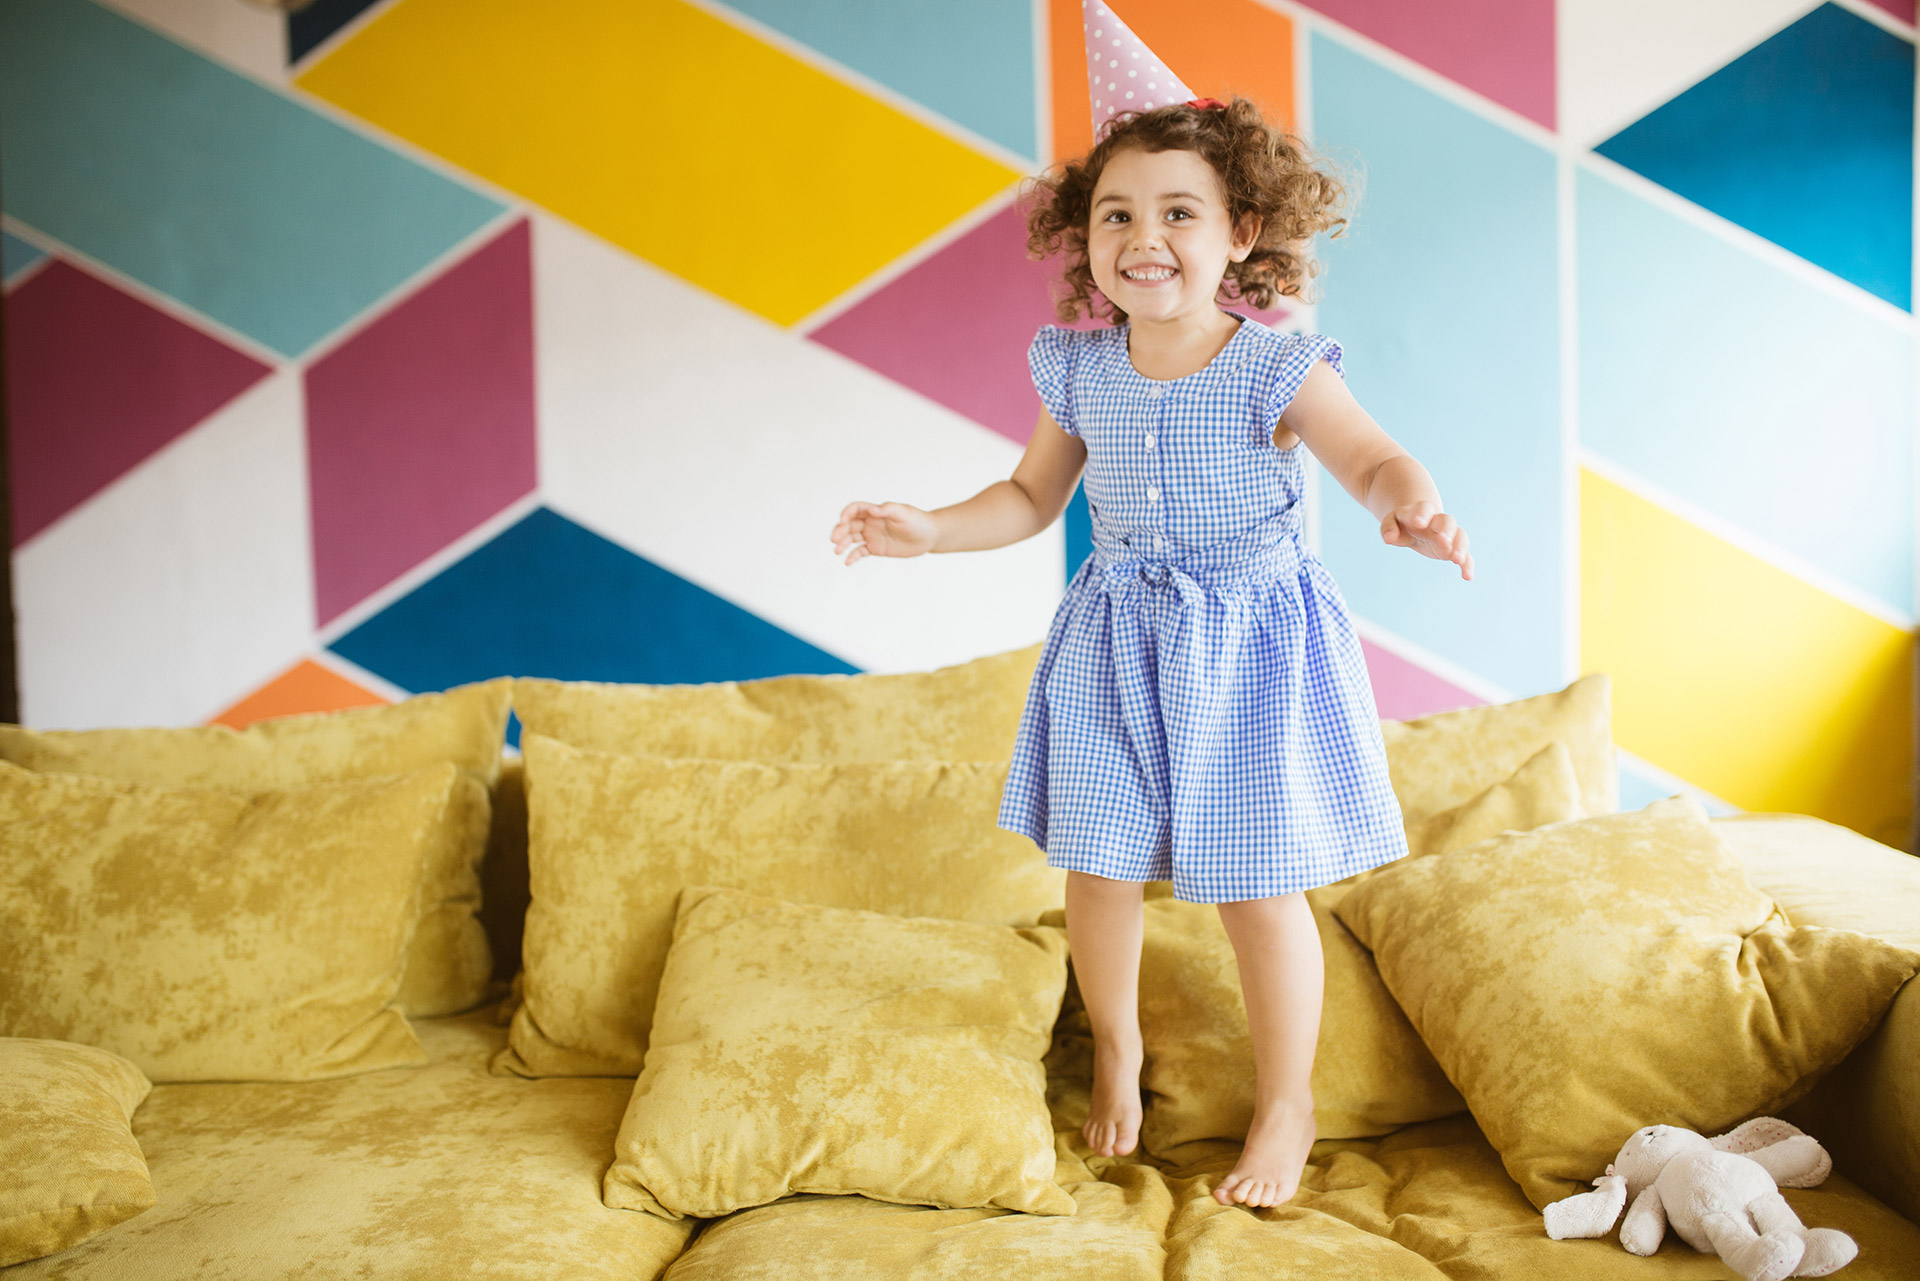 Children's activity at home is malleable